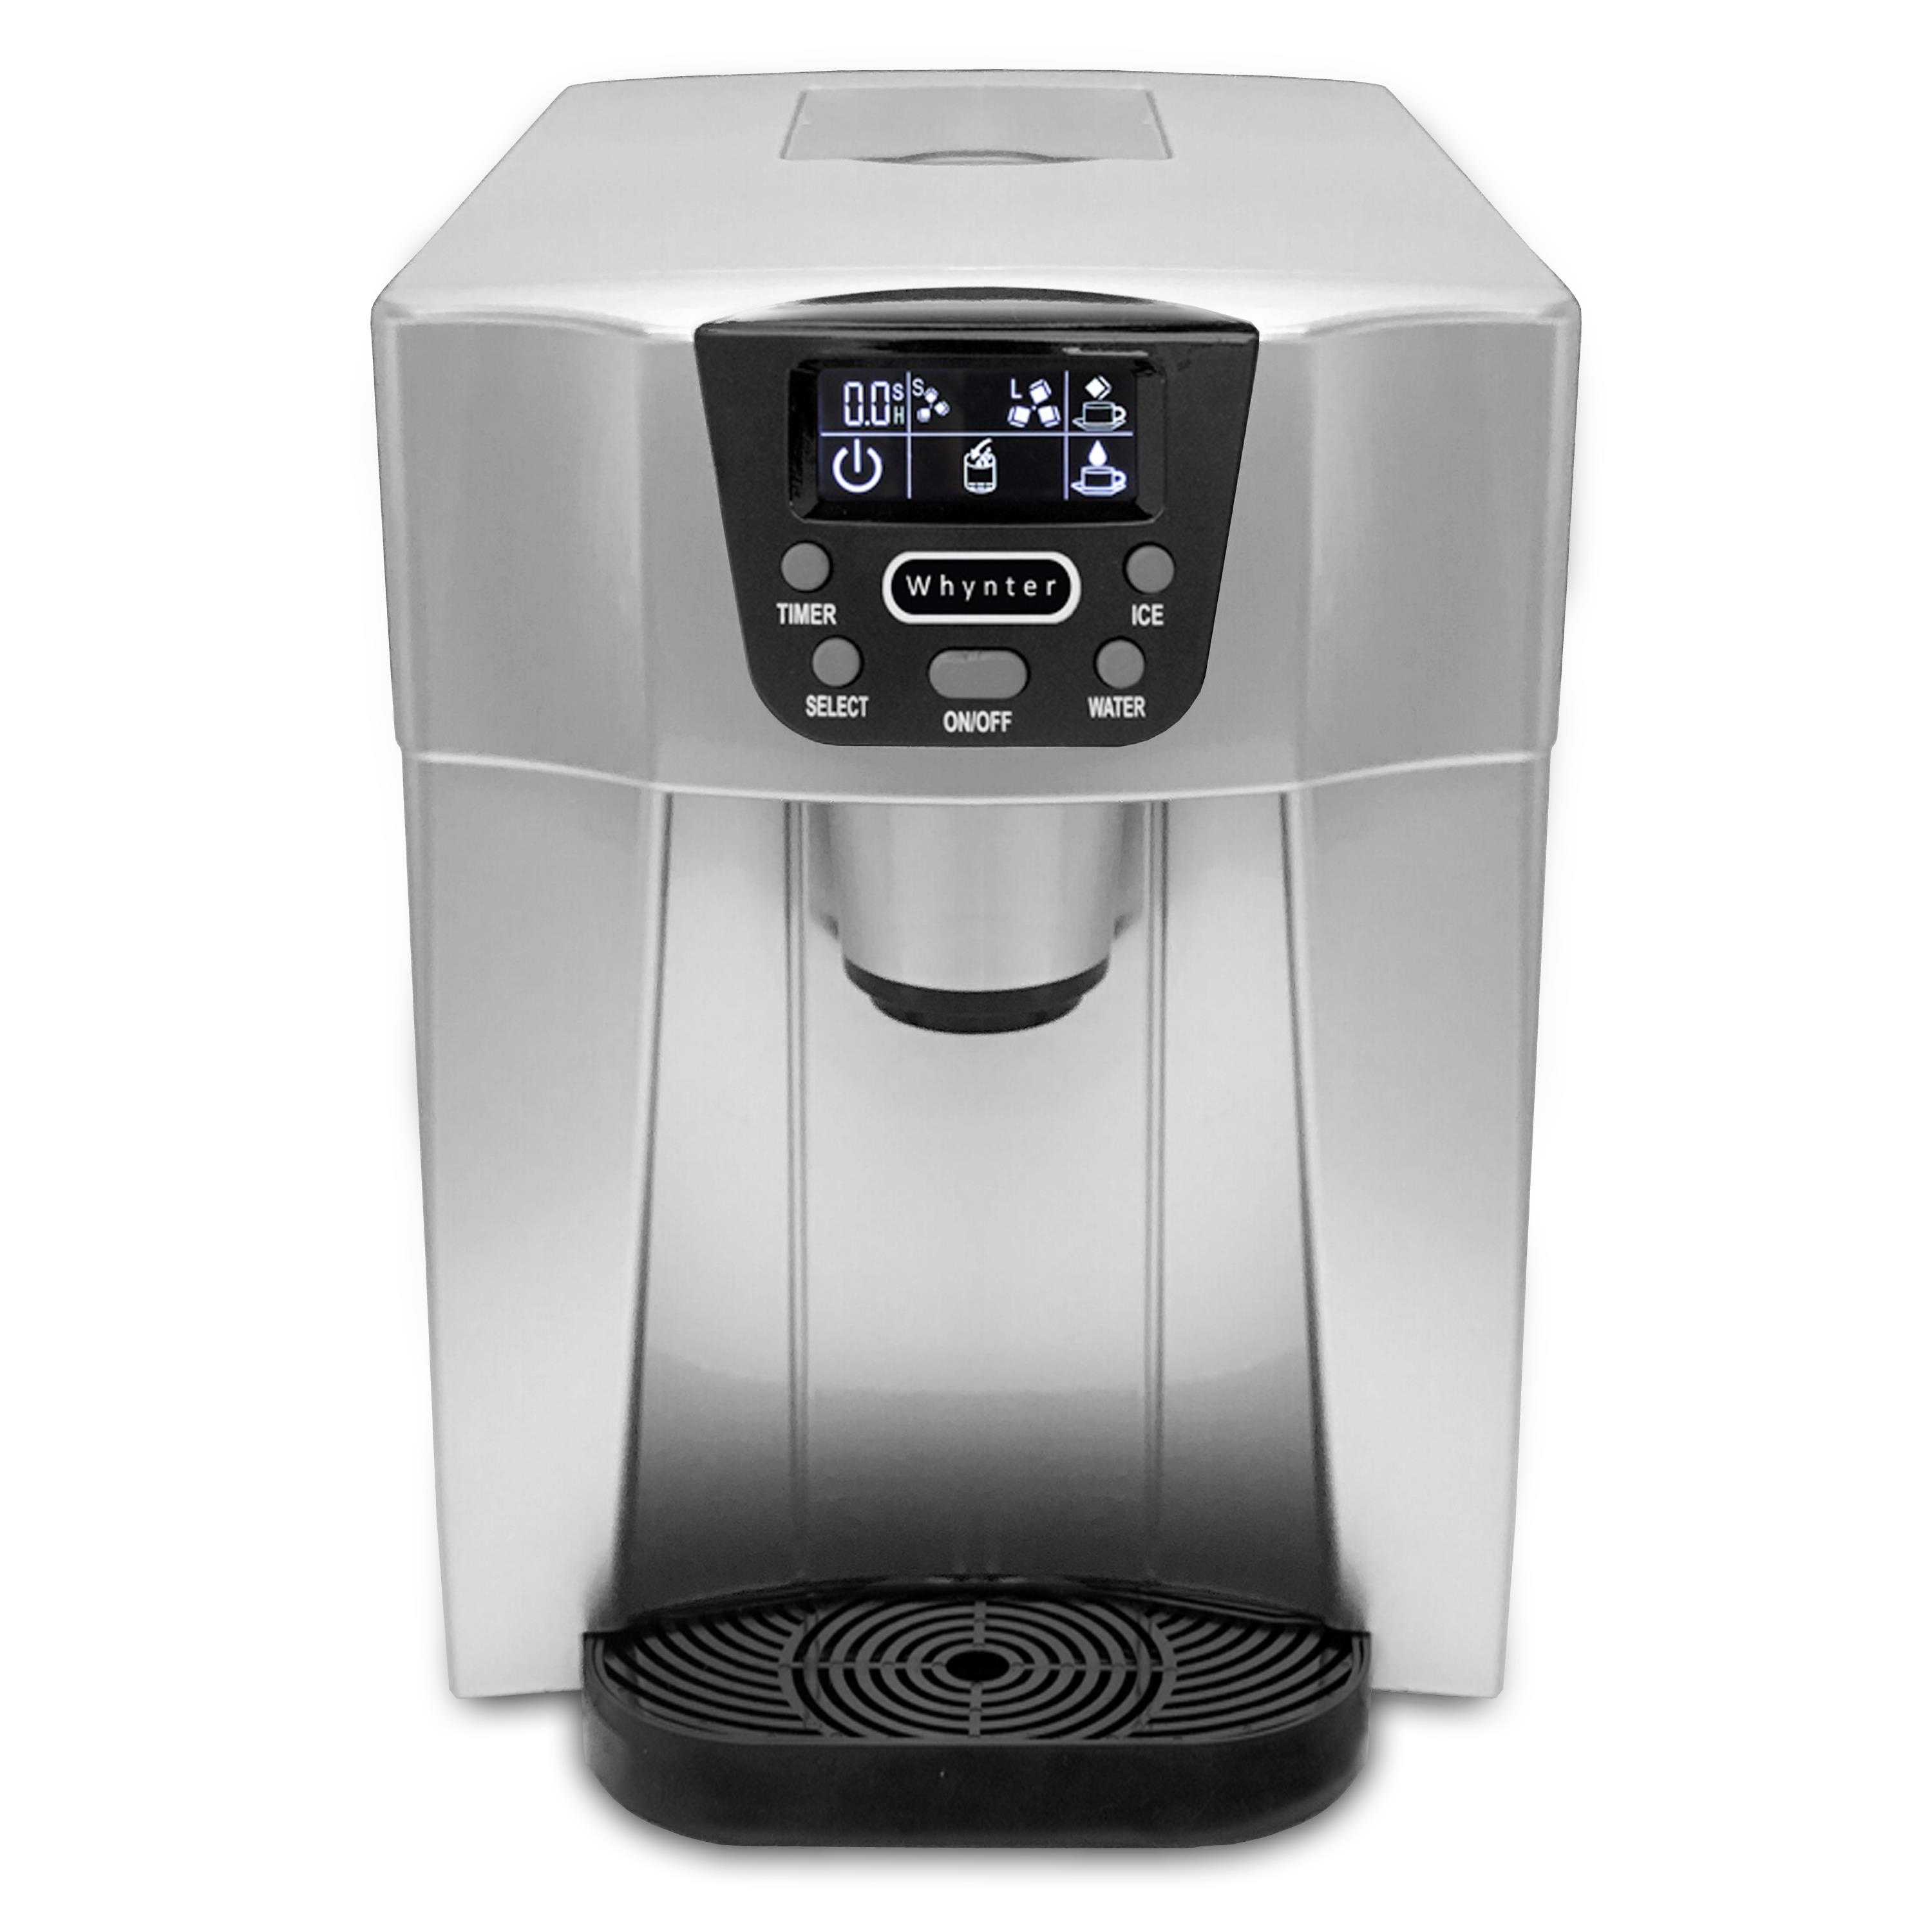 Countertop Ice Maker Walmart Idc 221sc Whynter Countertop Direct Connection Ice Maker And Water